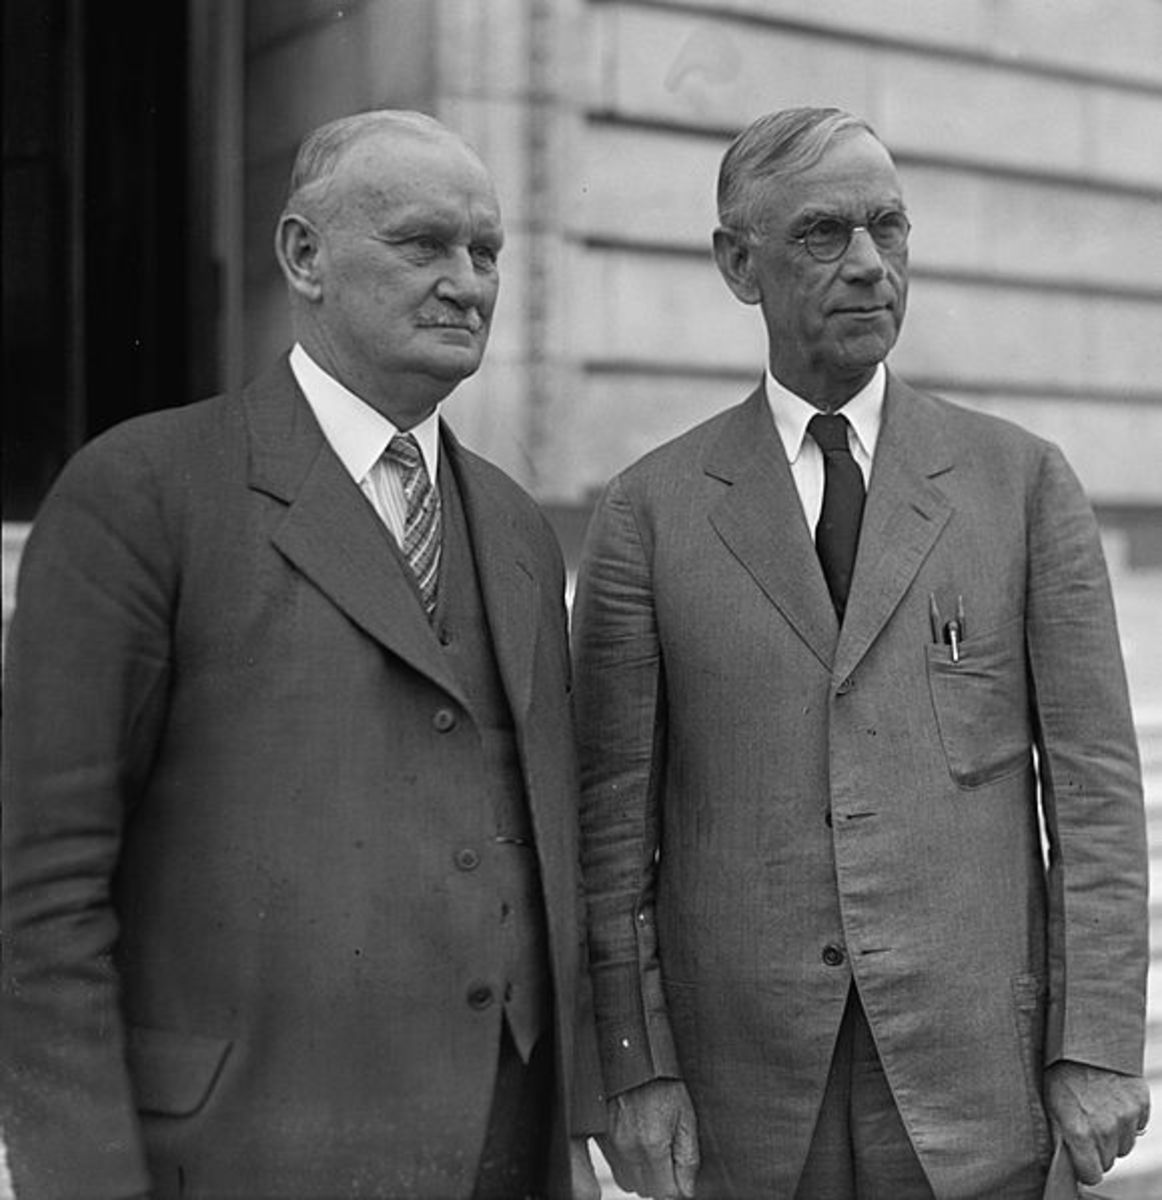 Willis Hawley (left) and Reed Smoot.